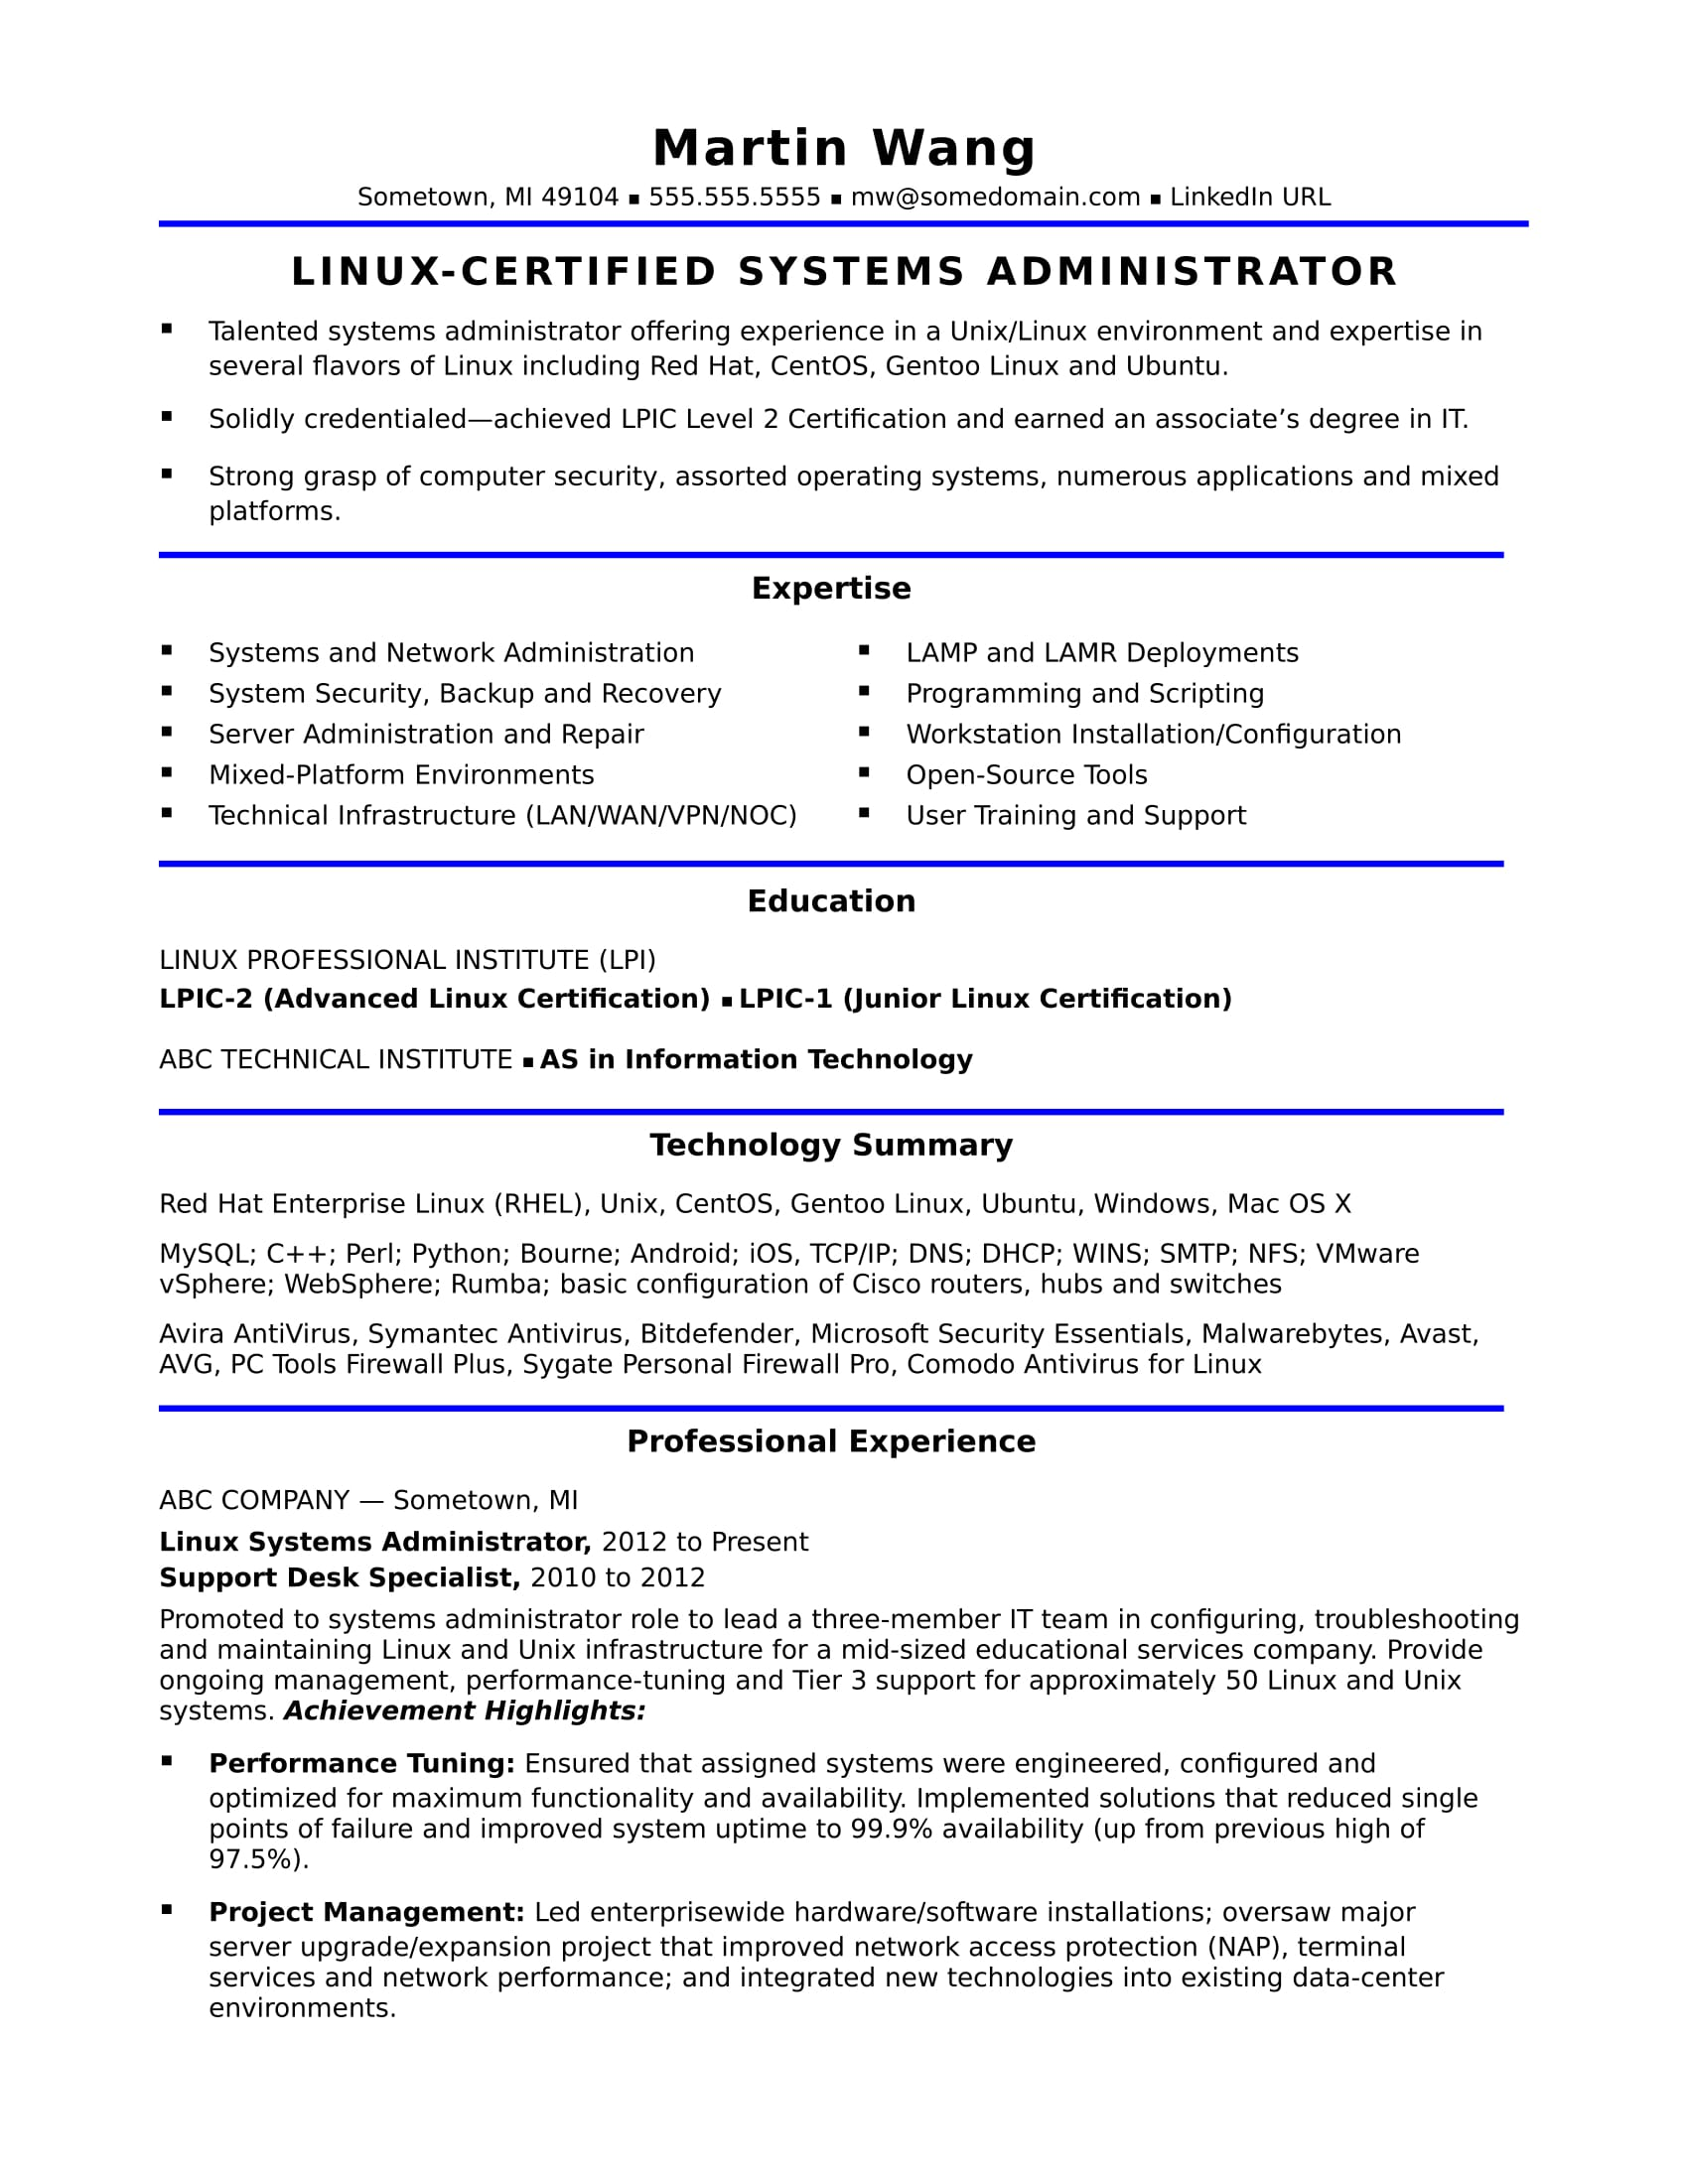 sample resume for midlevel systems administrator monster unix social worker correctional Resume Unix Administrator Resume Sample